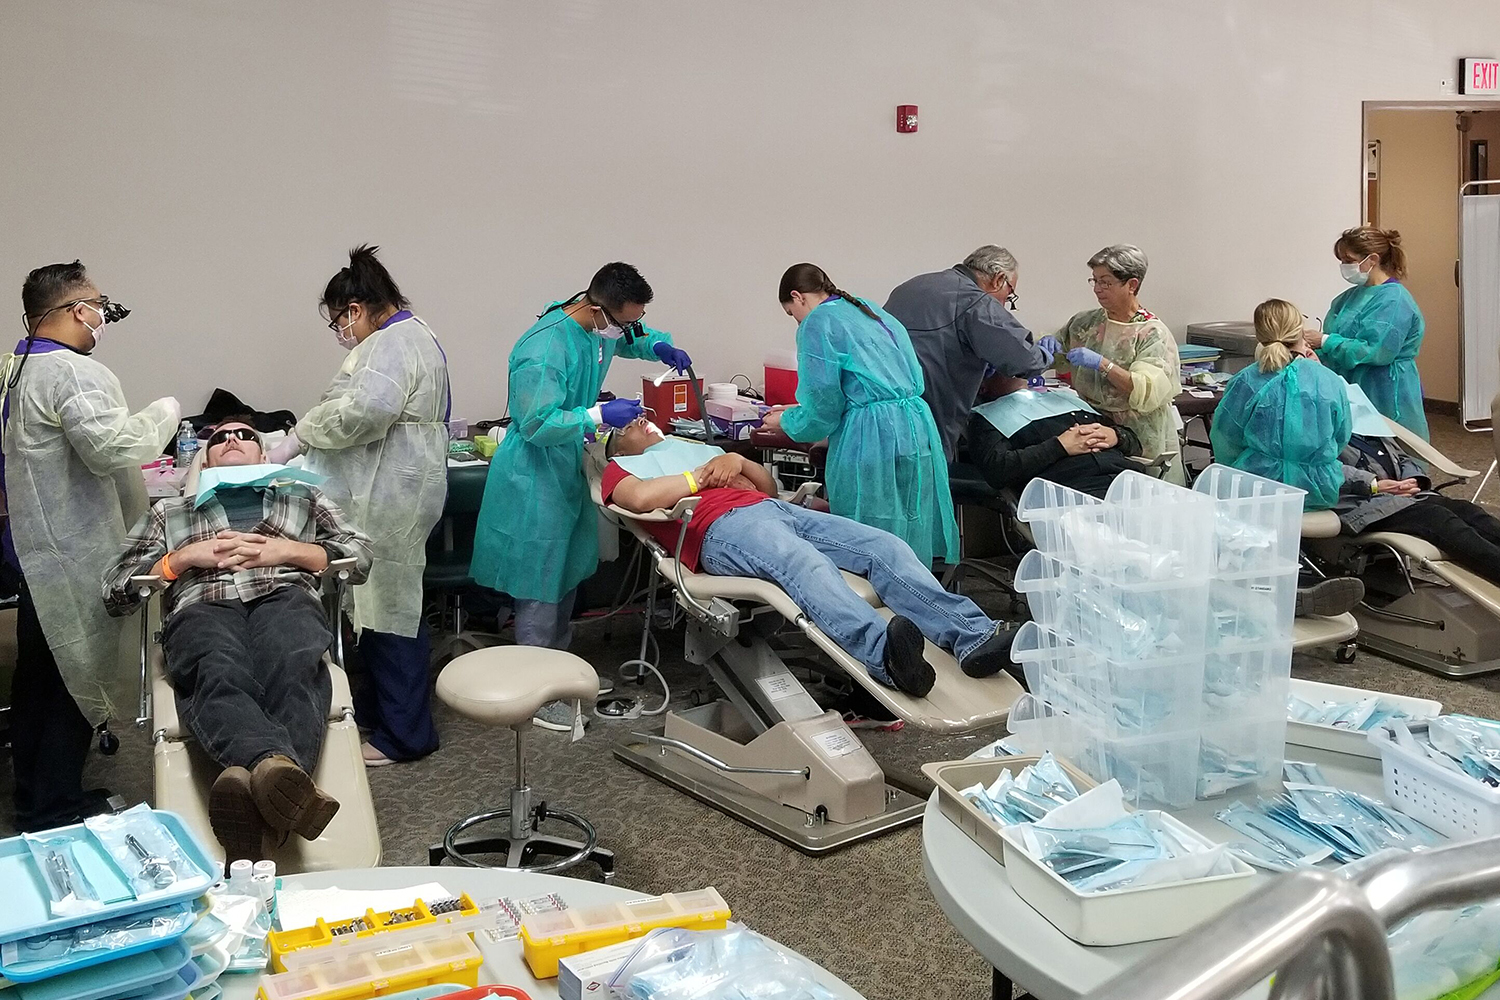 Sandy Pop-up Dental Clinic Serves More than a Hundred Patients